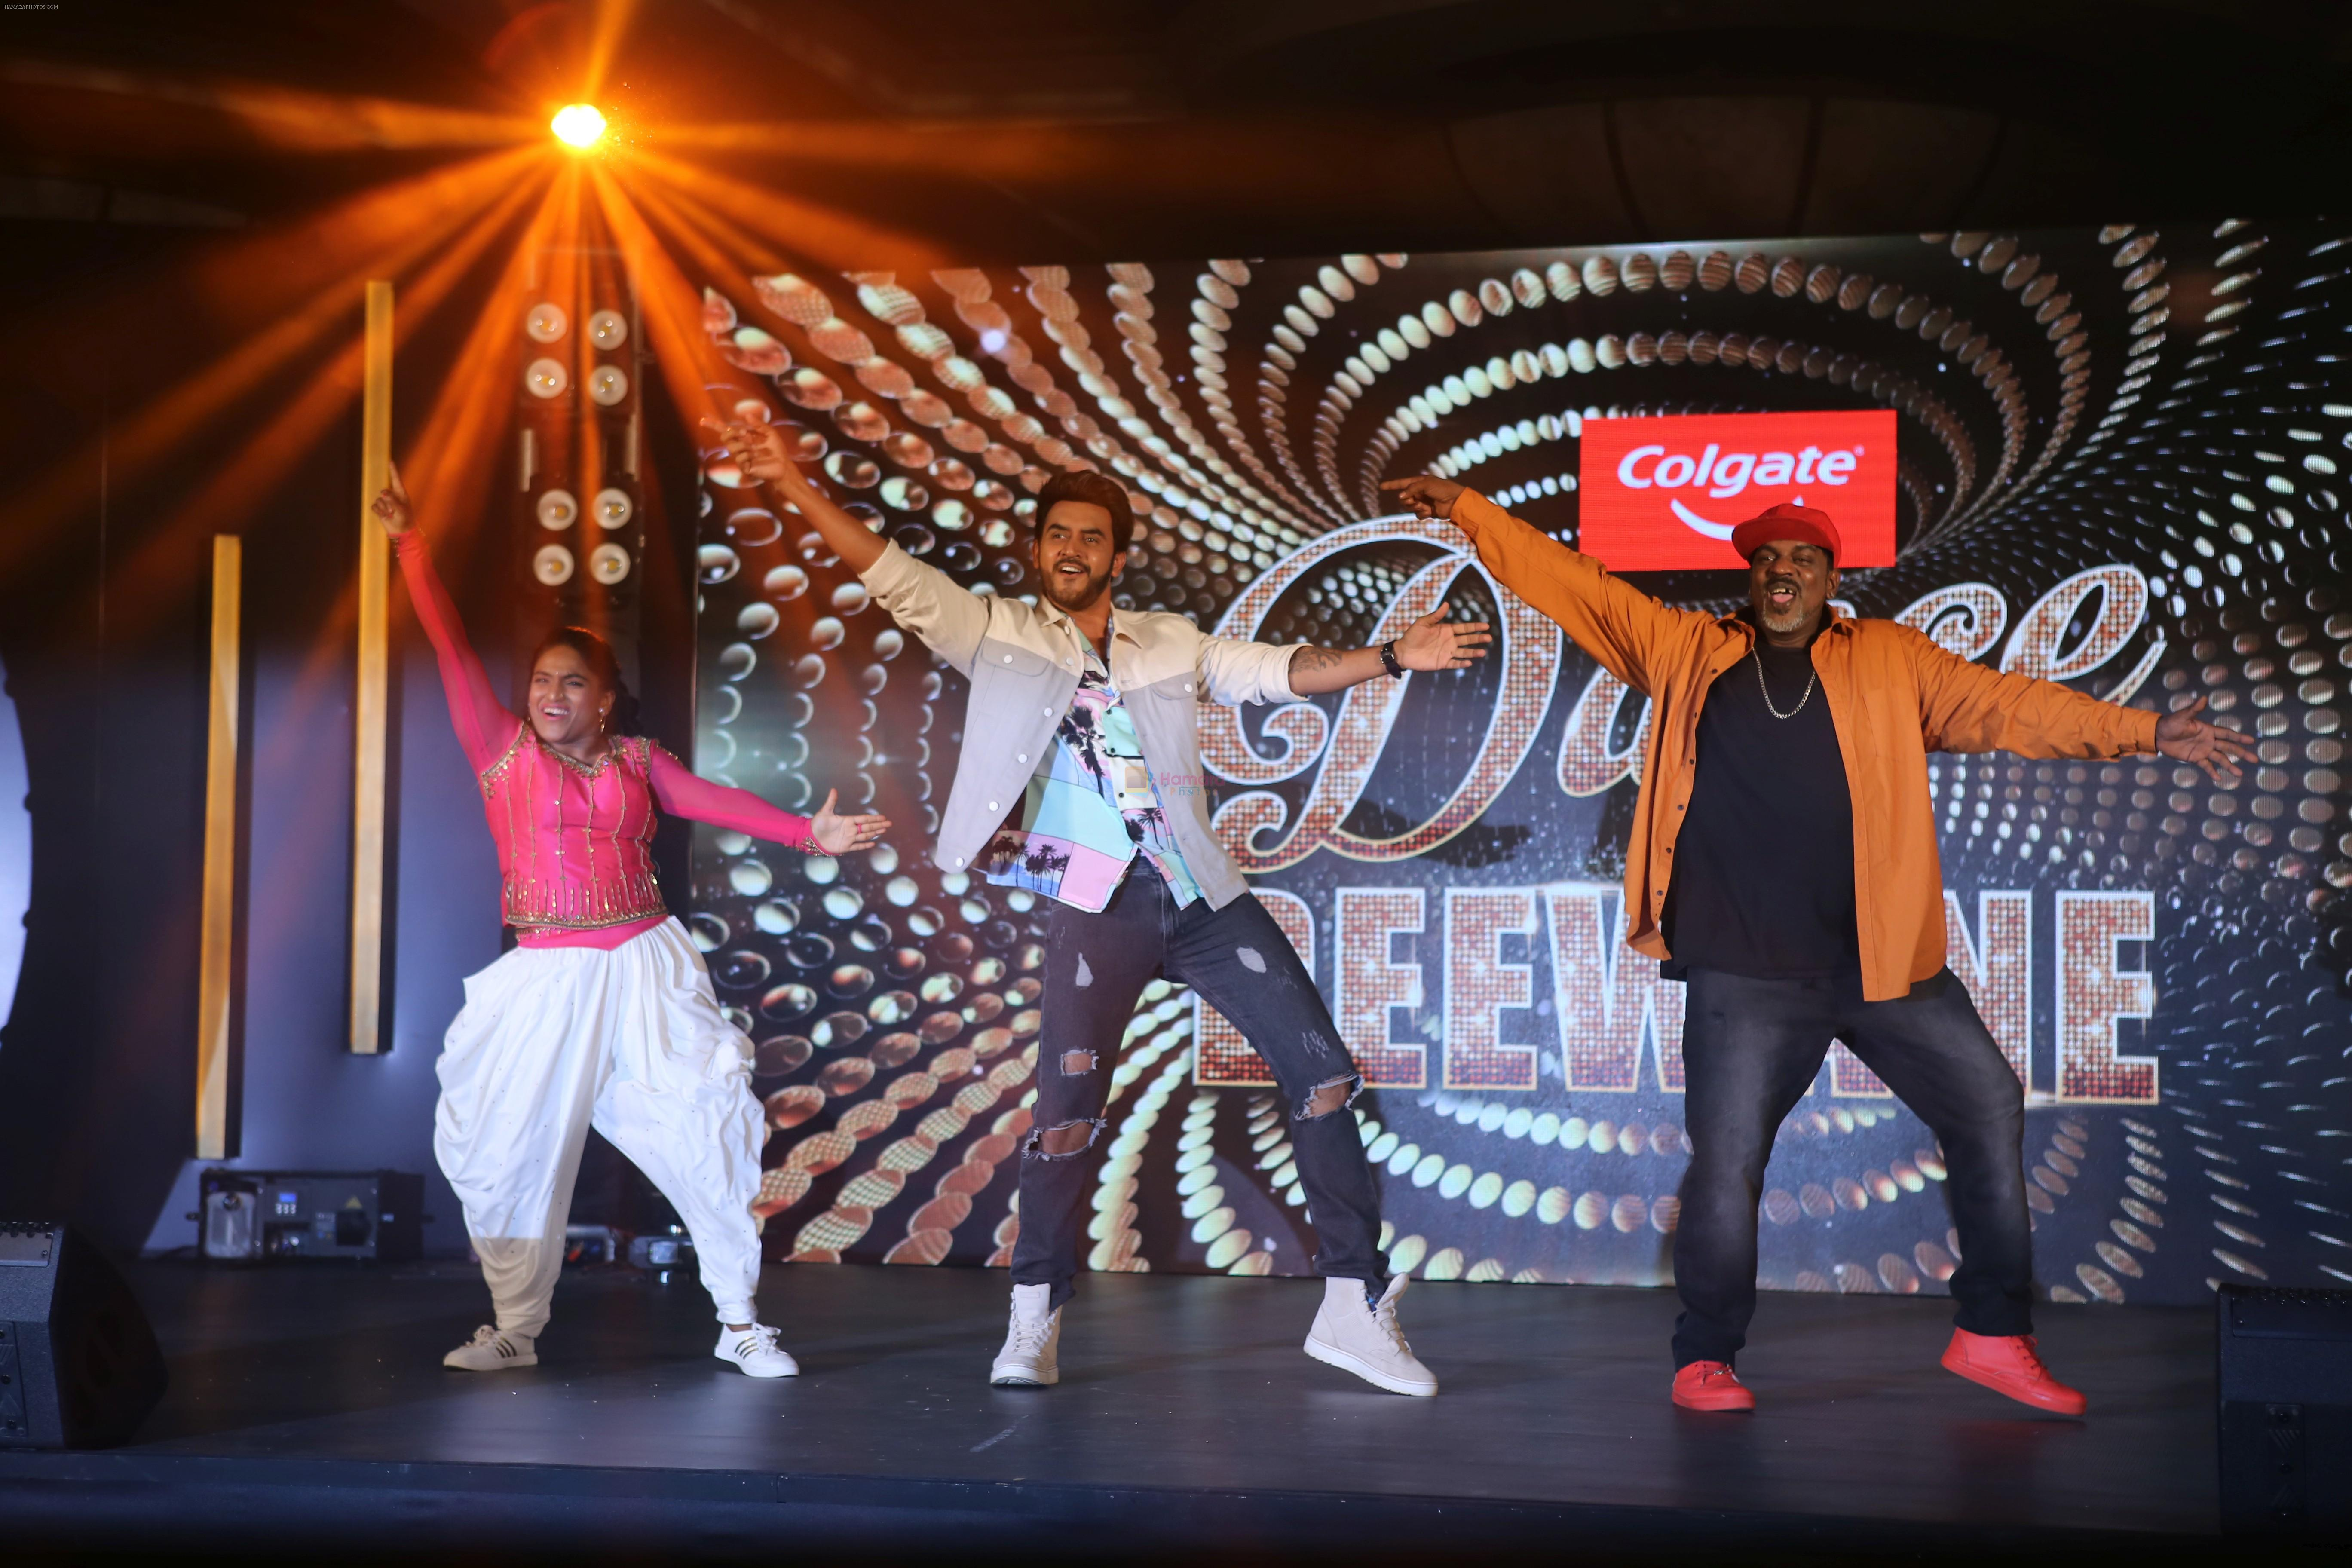 Shashank Khaitan at the launch of colors show Dance Deewane at jw marriott juhu on 26th May 2019